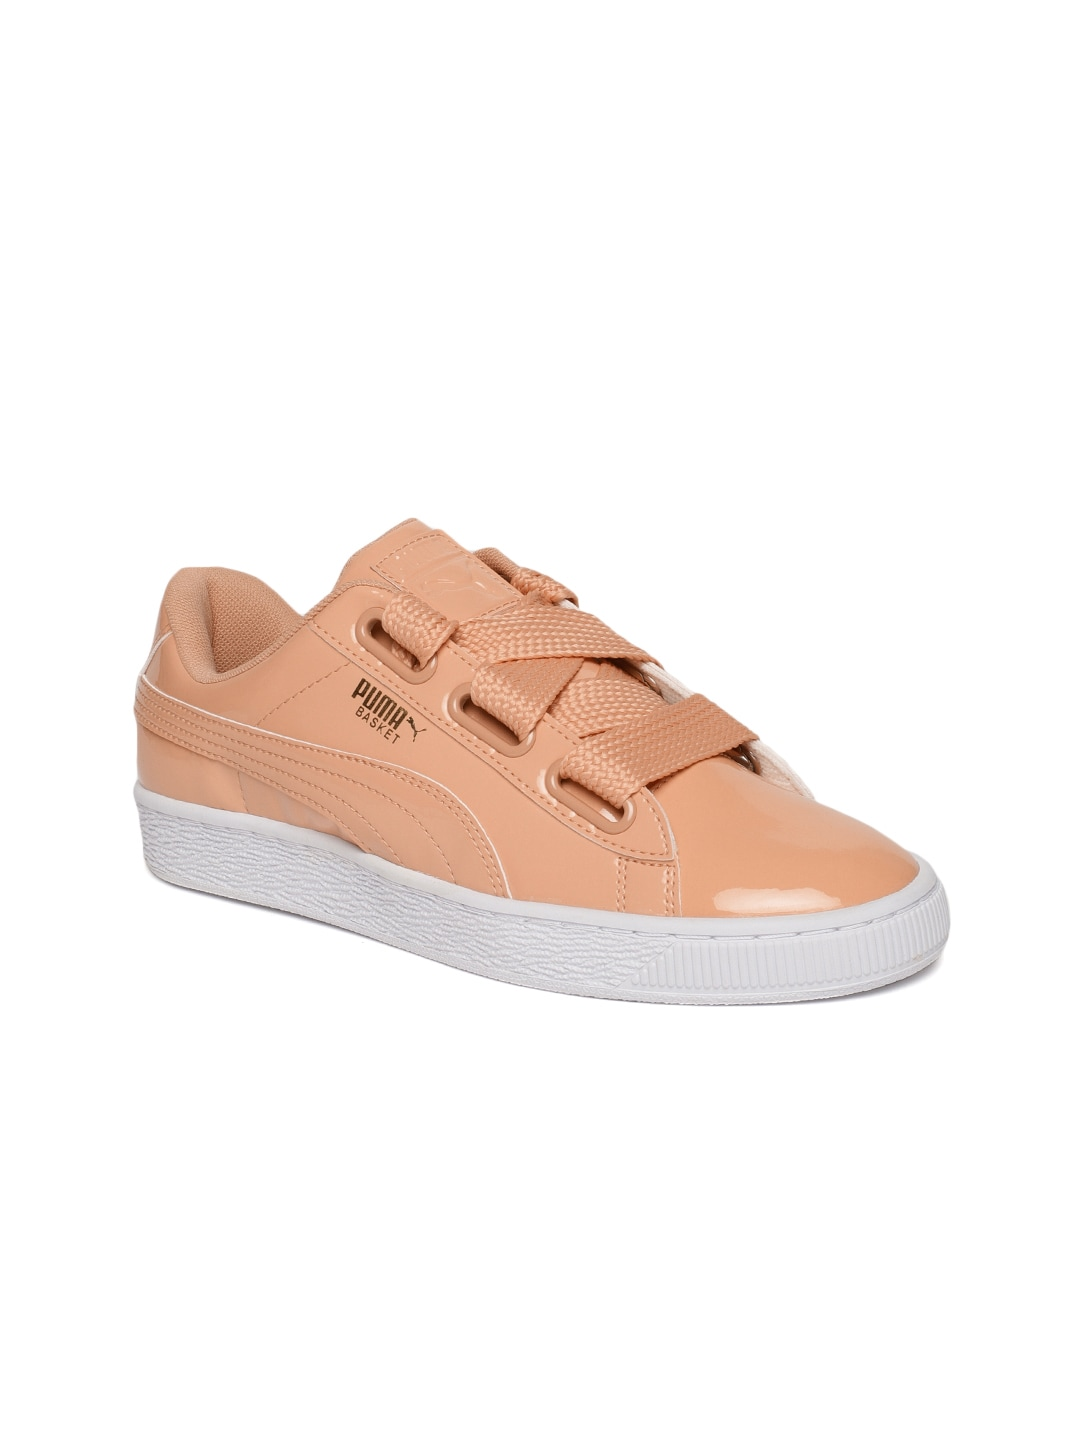 Puma White Casual Buy Online Shoes India In srdhQxtC